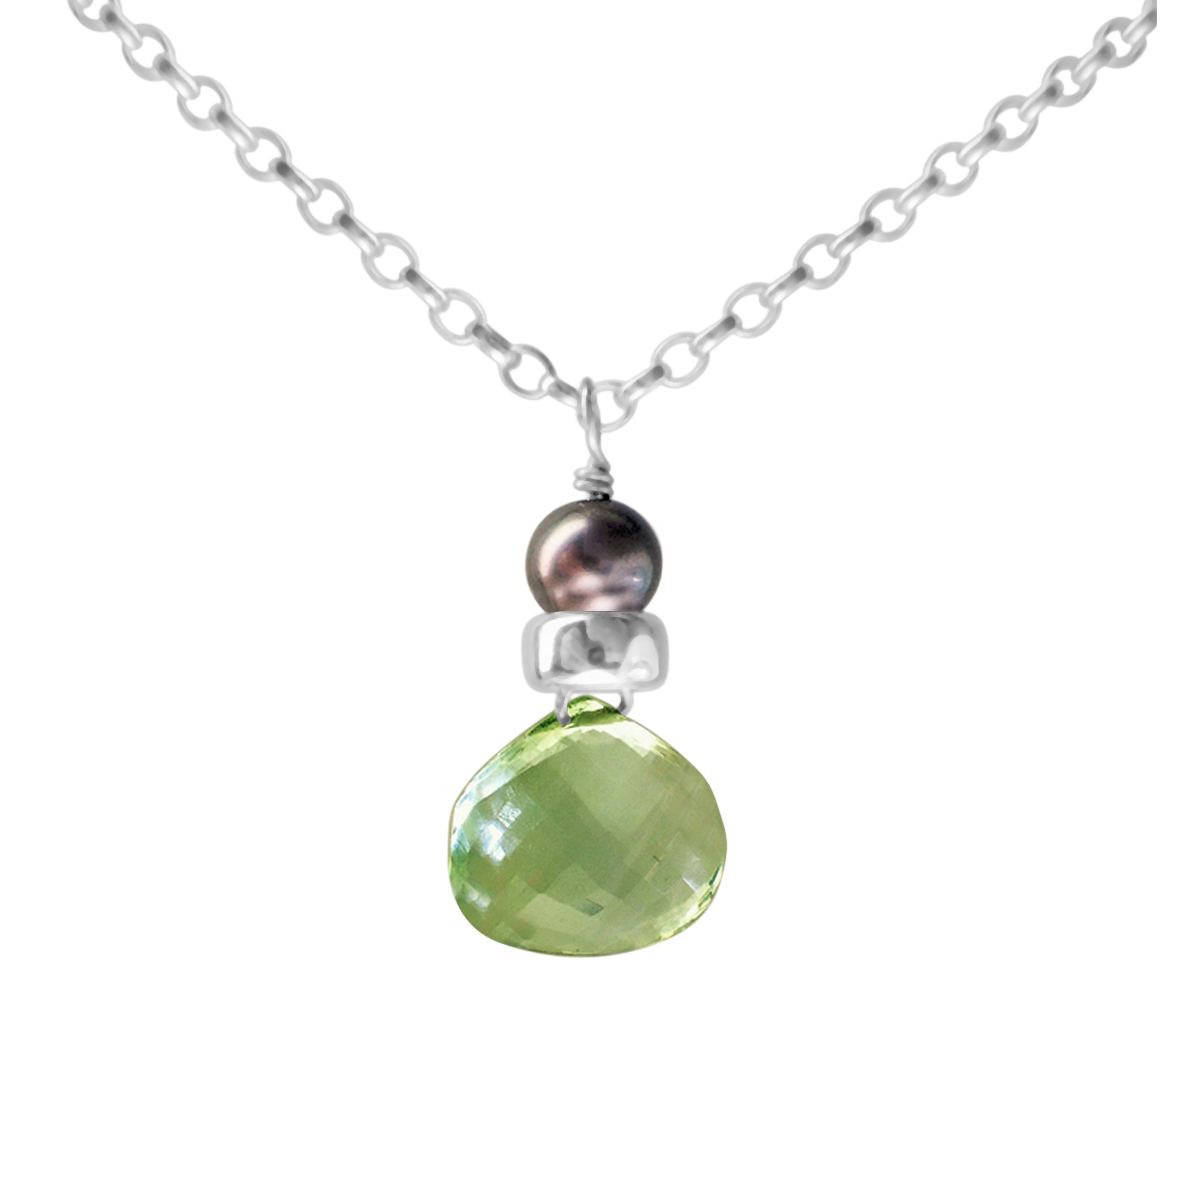 Perfume Bottle green amethyst and blue pearl necklace